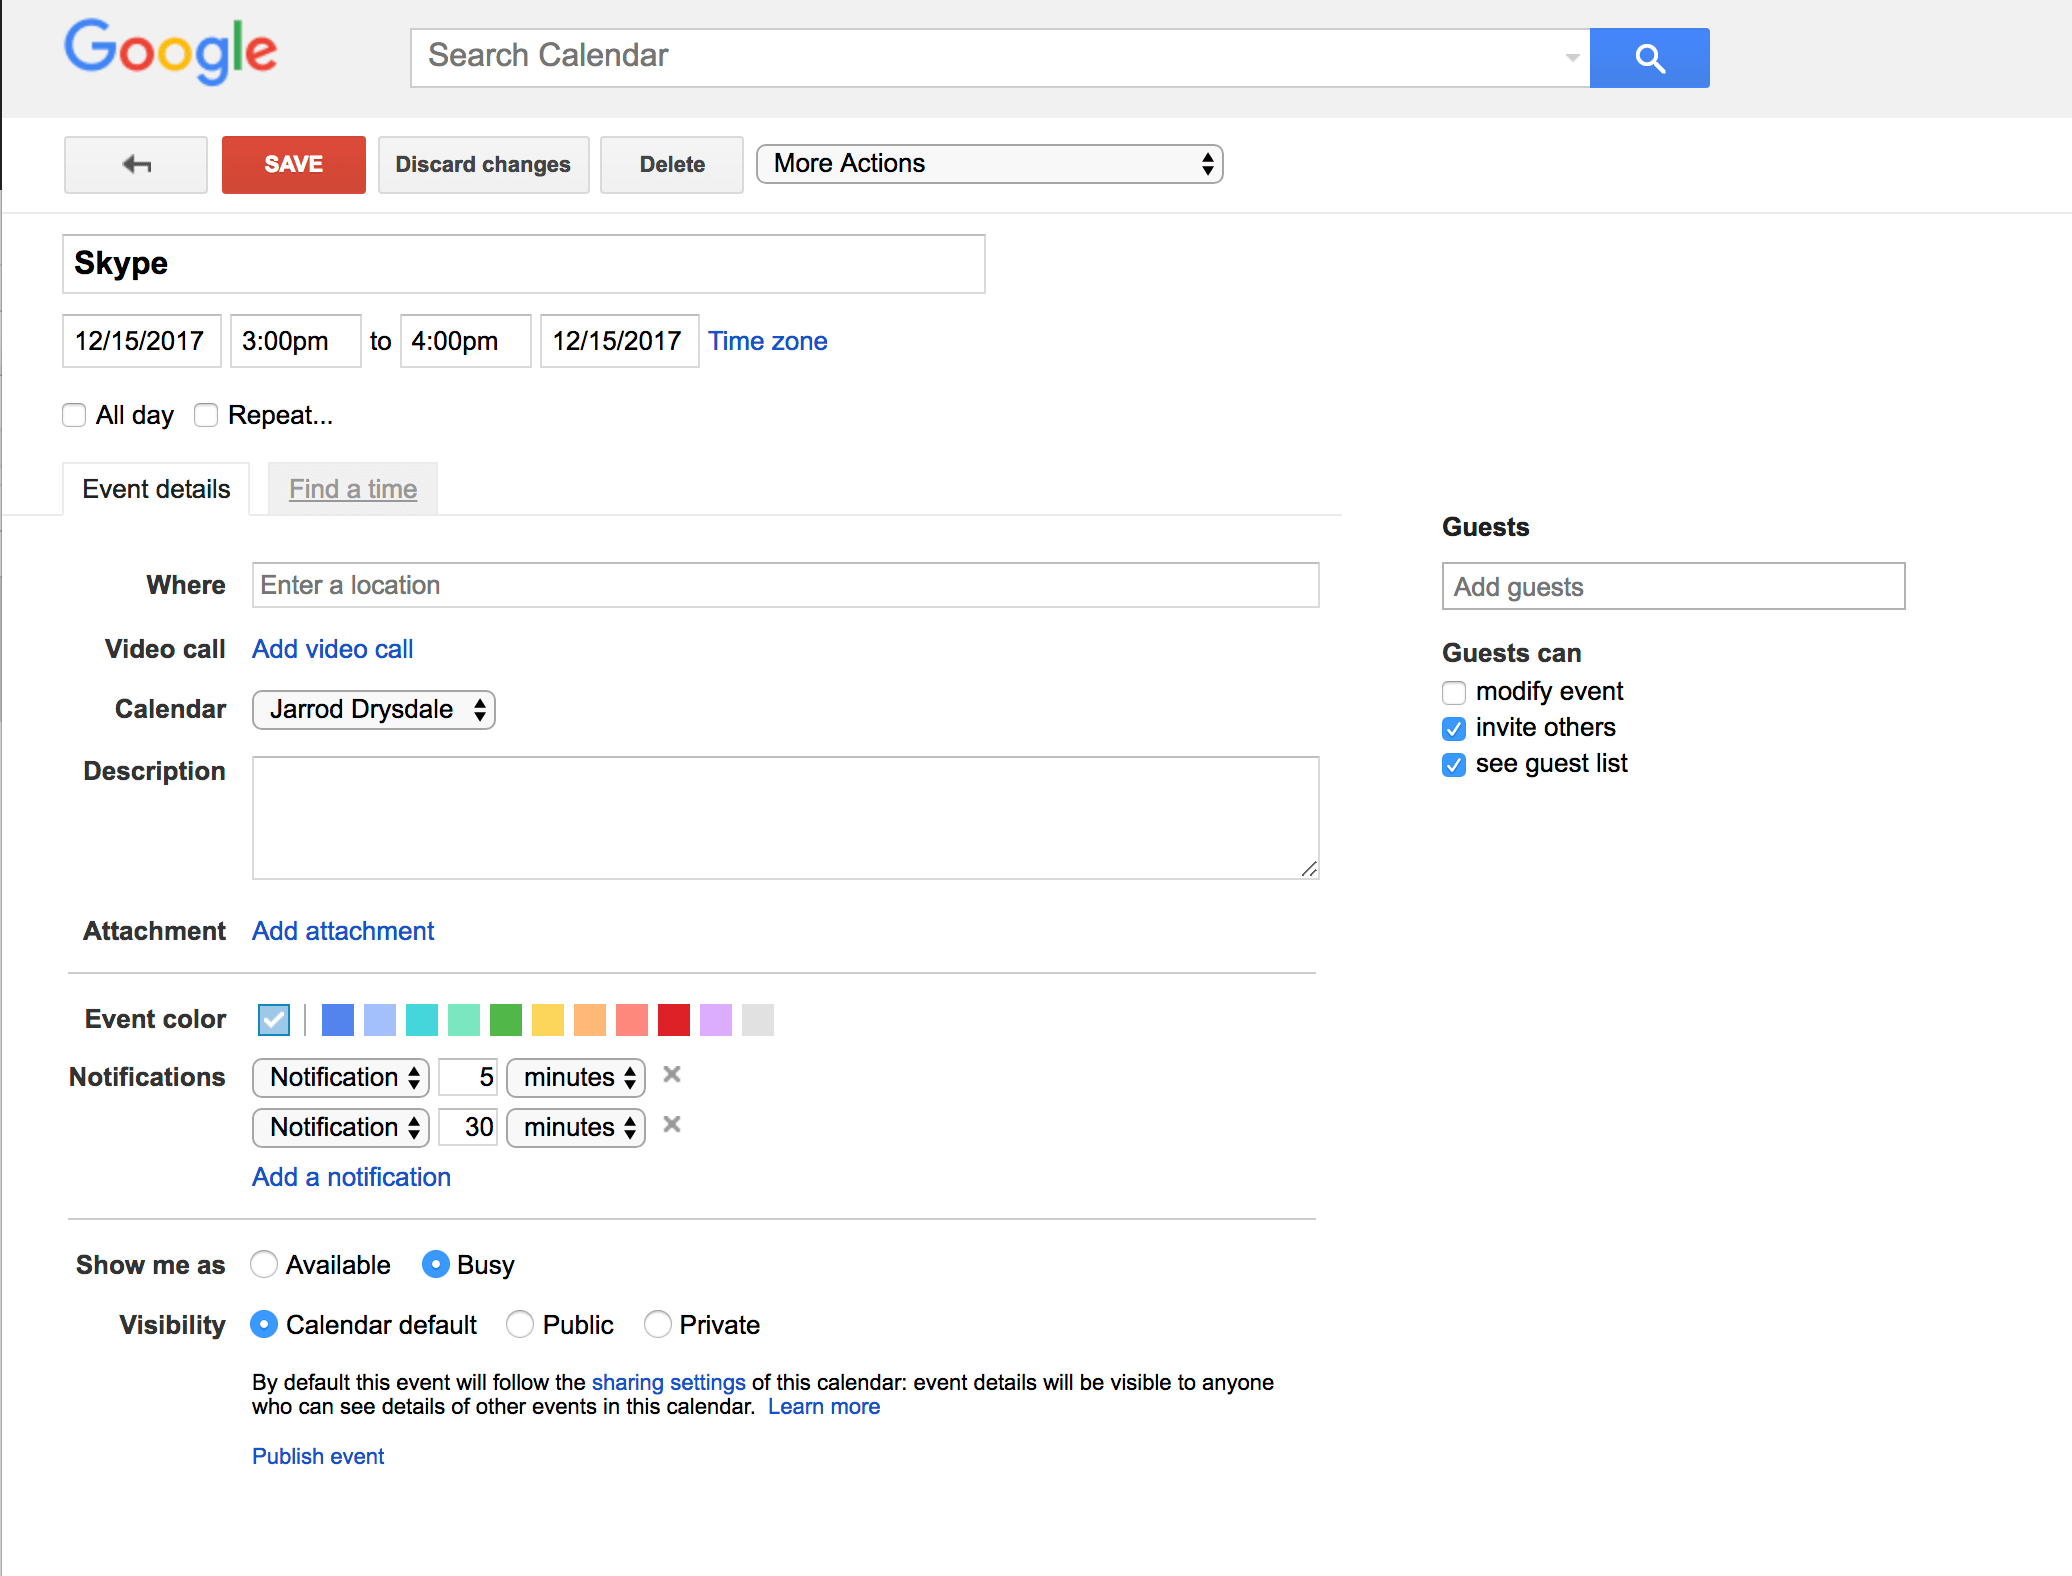 Screenshot of the new Google Calendar design